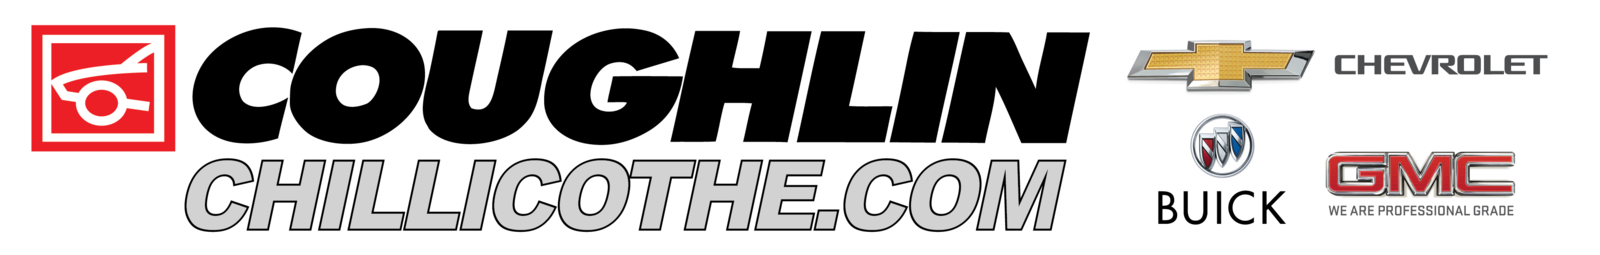 Columbus Fiat Dealers >> Coughlin Chevrolet Buick GMC of Chillicothe - Chillicothe, OH: Read Consumer reviews, Browse ...